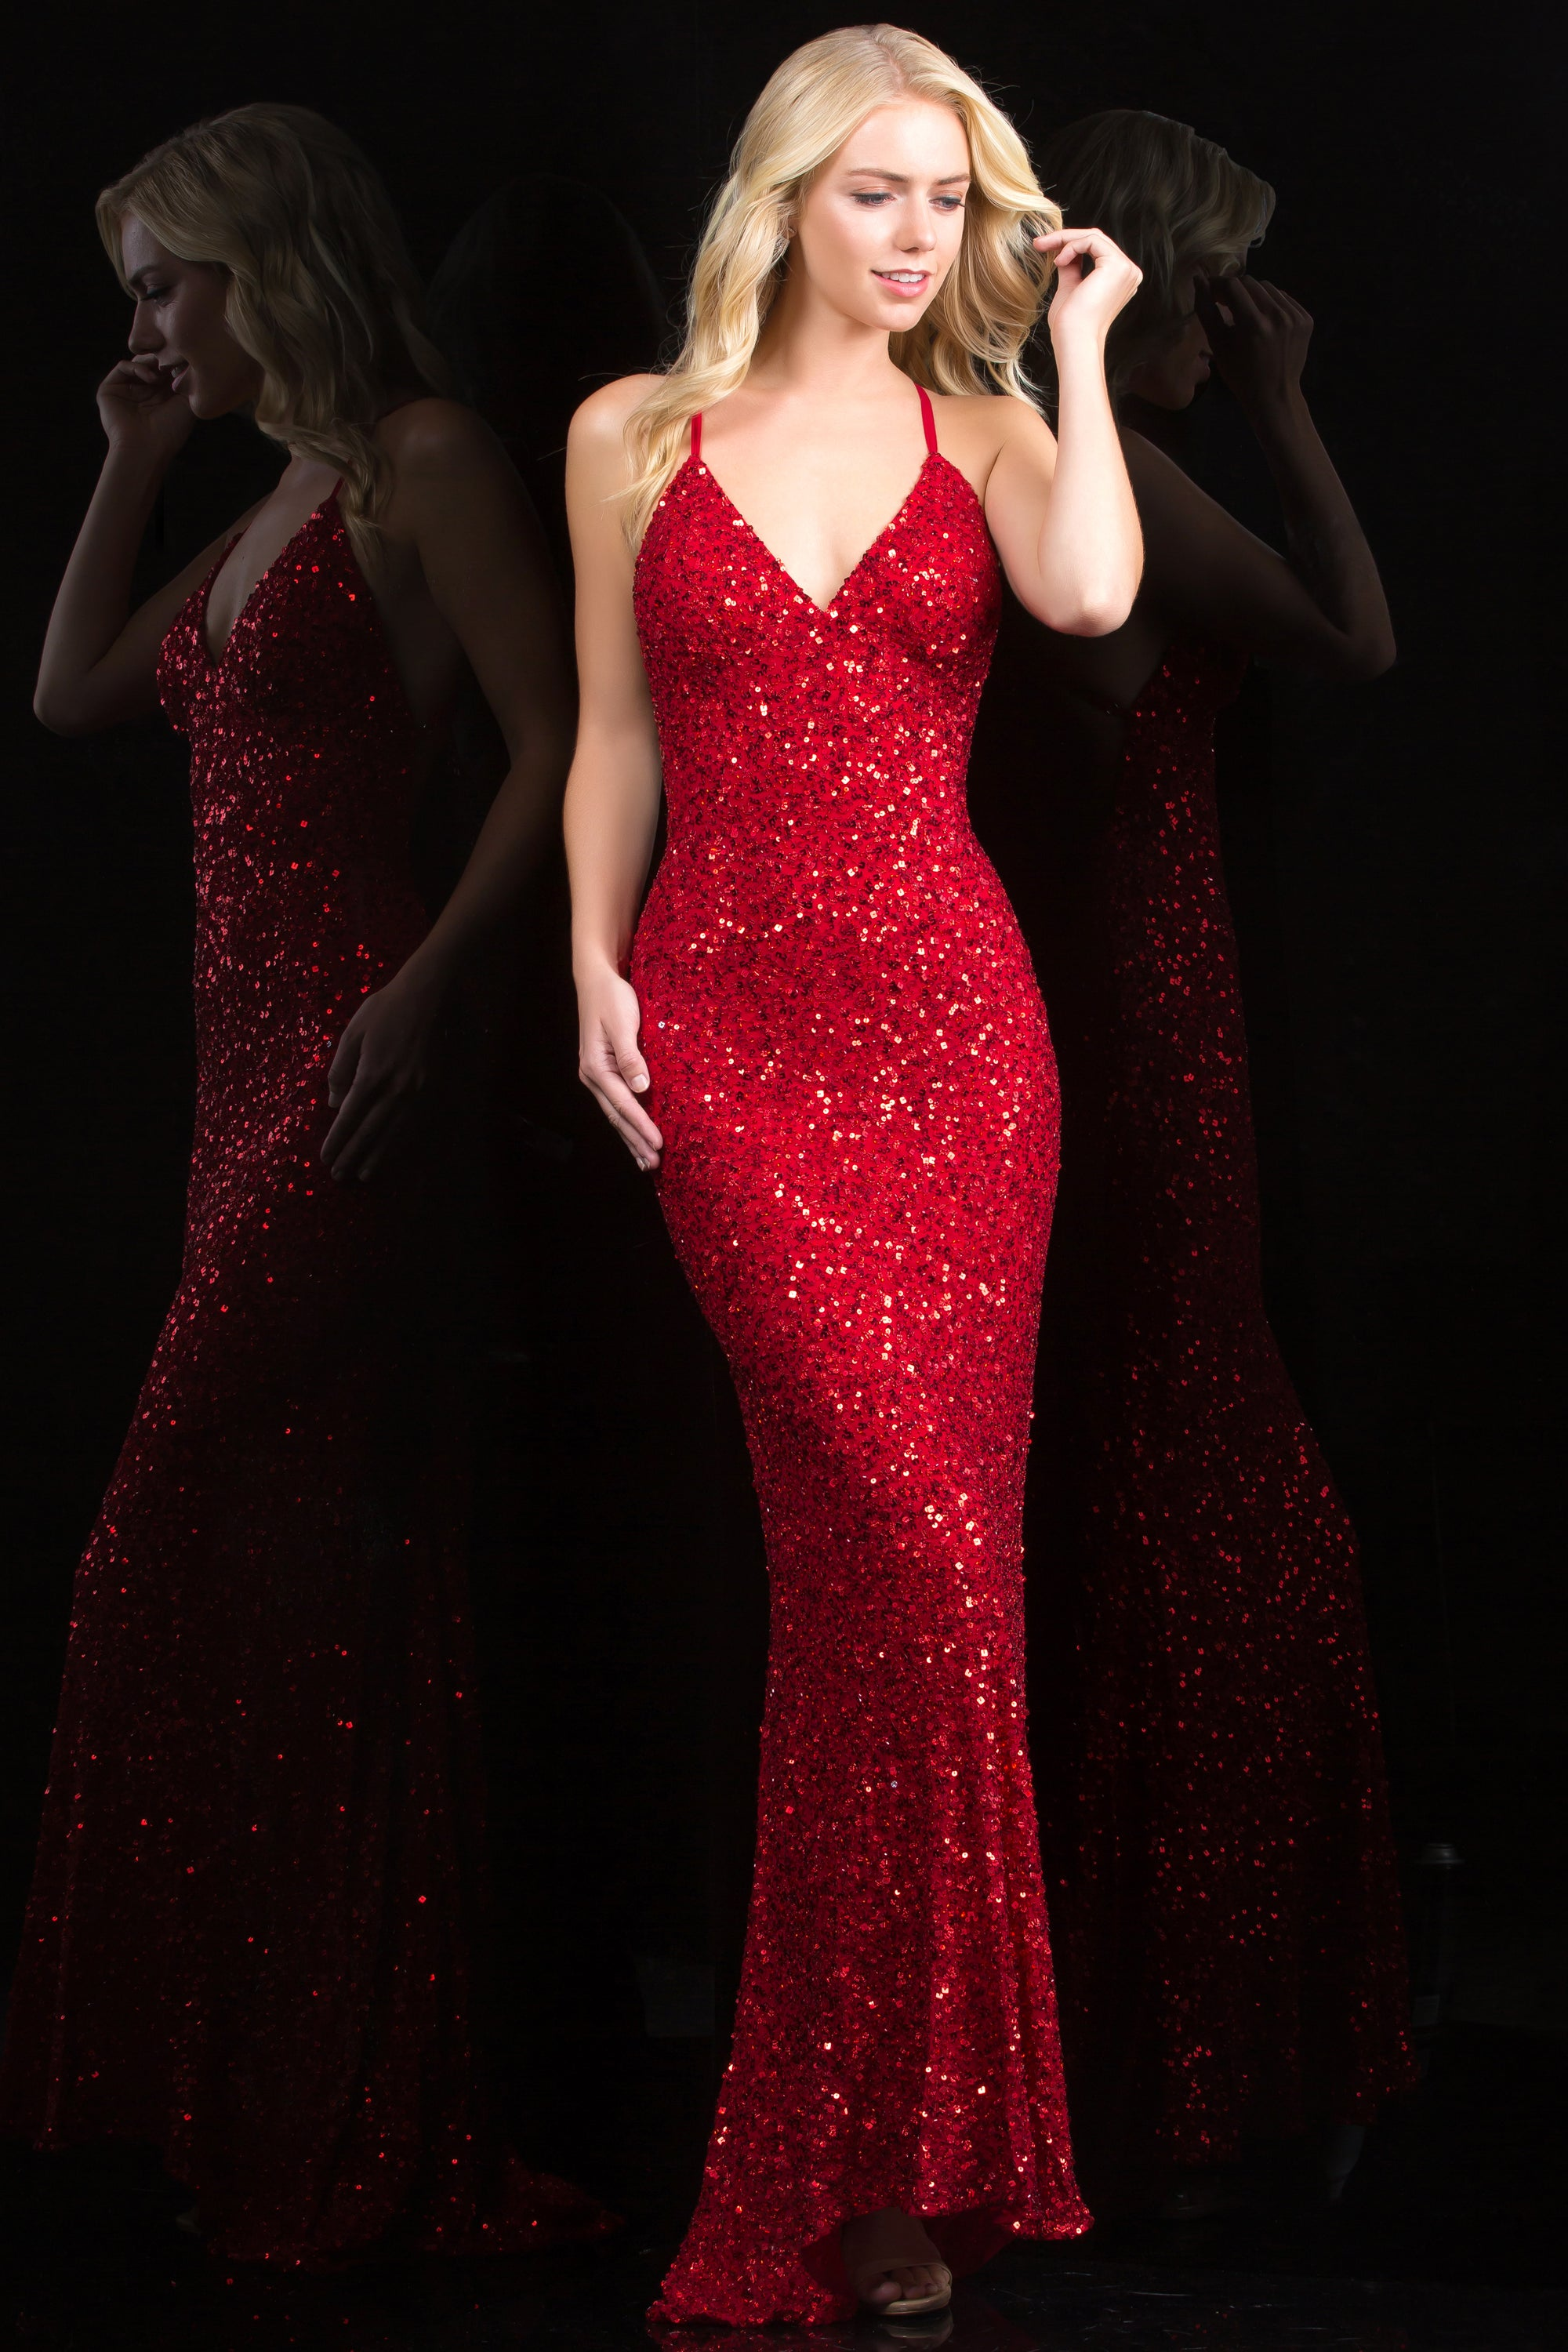 af357ae6c5d Scala 47551 red low back sequin evening gown and prom dress - Mia ...